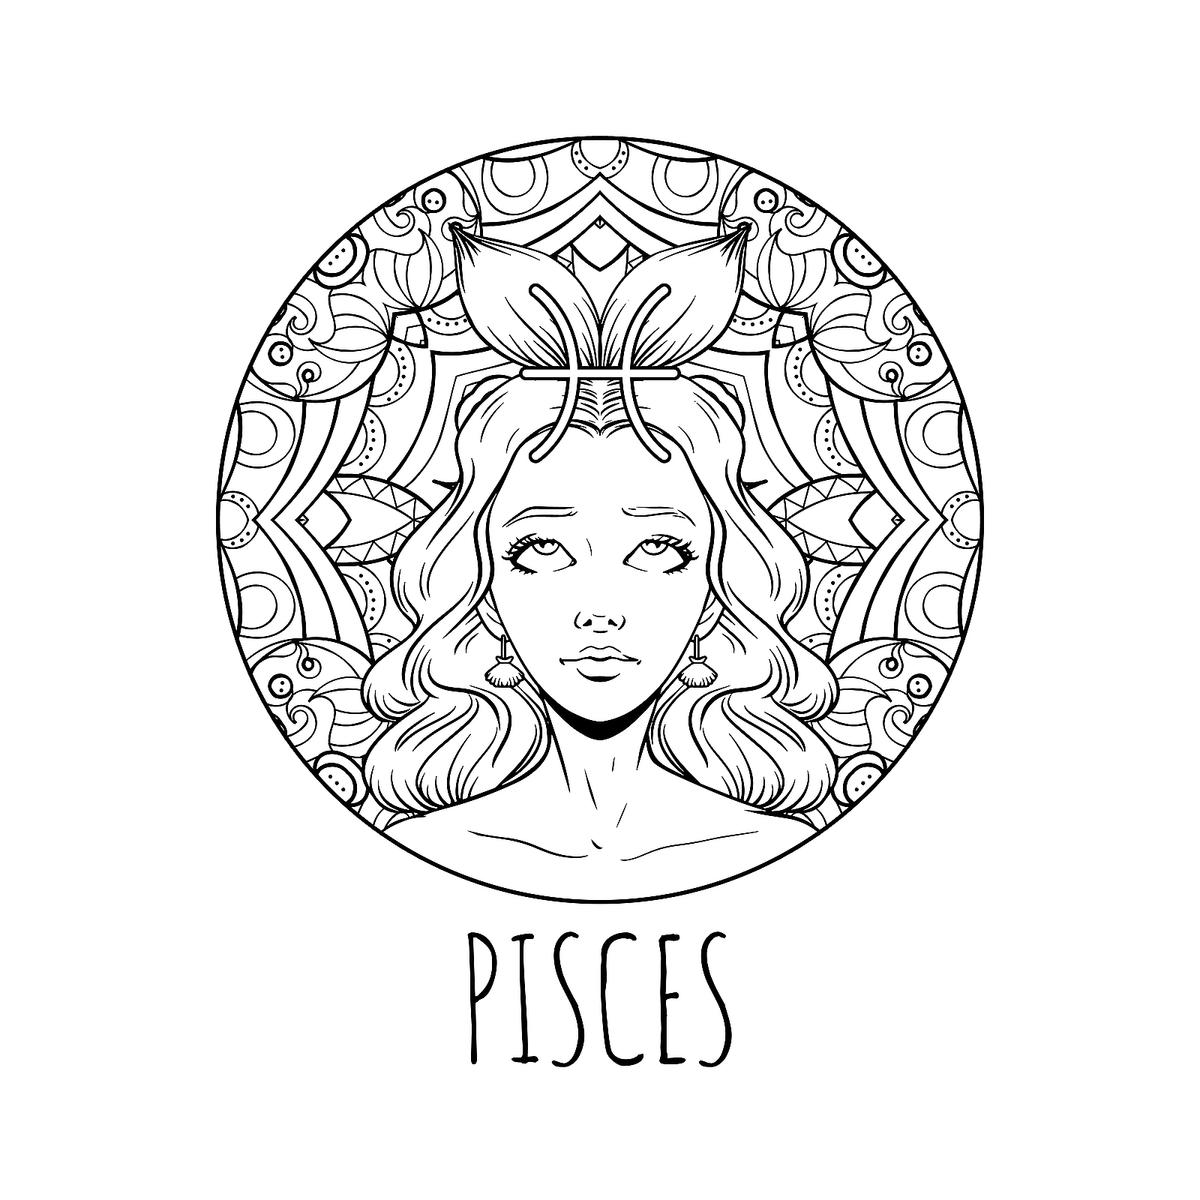 zodiac signs coloring pages art therapy coloring page astrology signs of zodiac 15 signs pages zodiac coloring